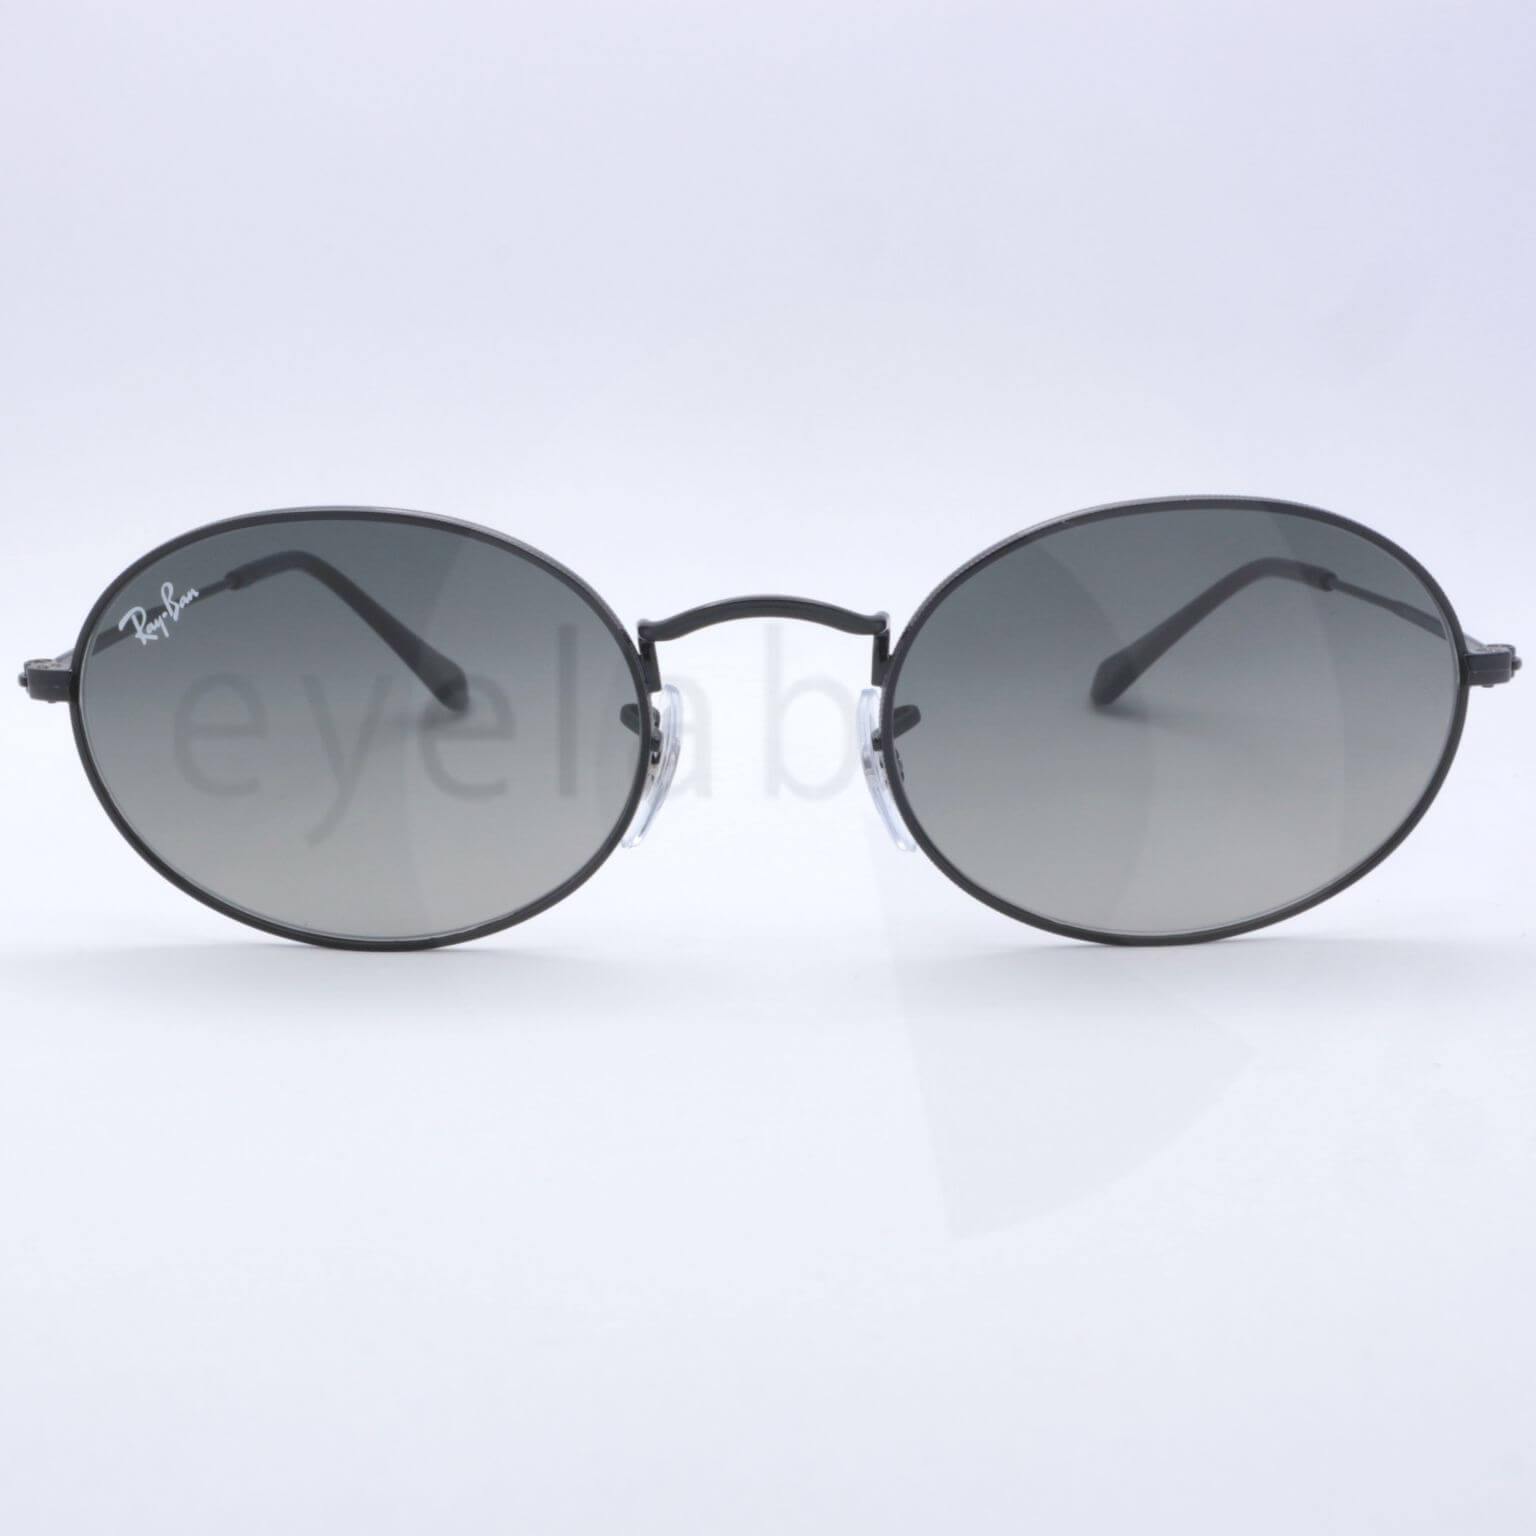 c863c03392 Ray-Ban Oval Flat 3547N 002 71 54 sunglasses ~ Οπτικά Eyelab